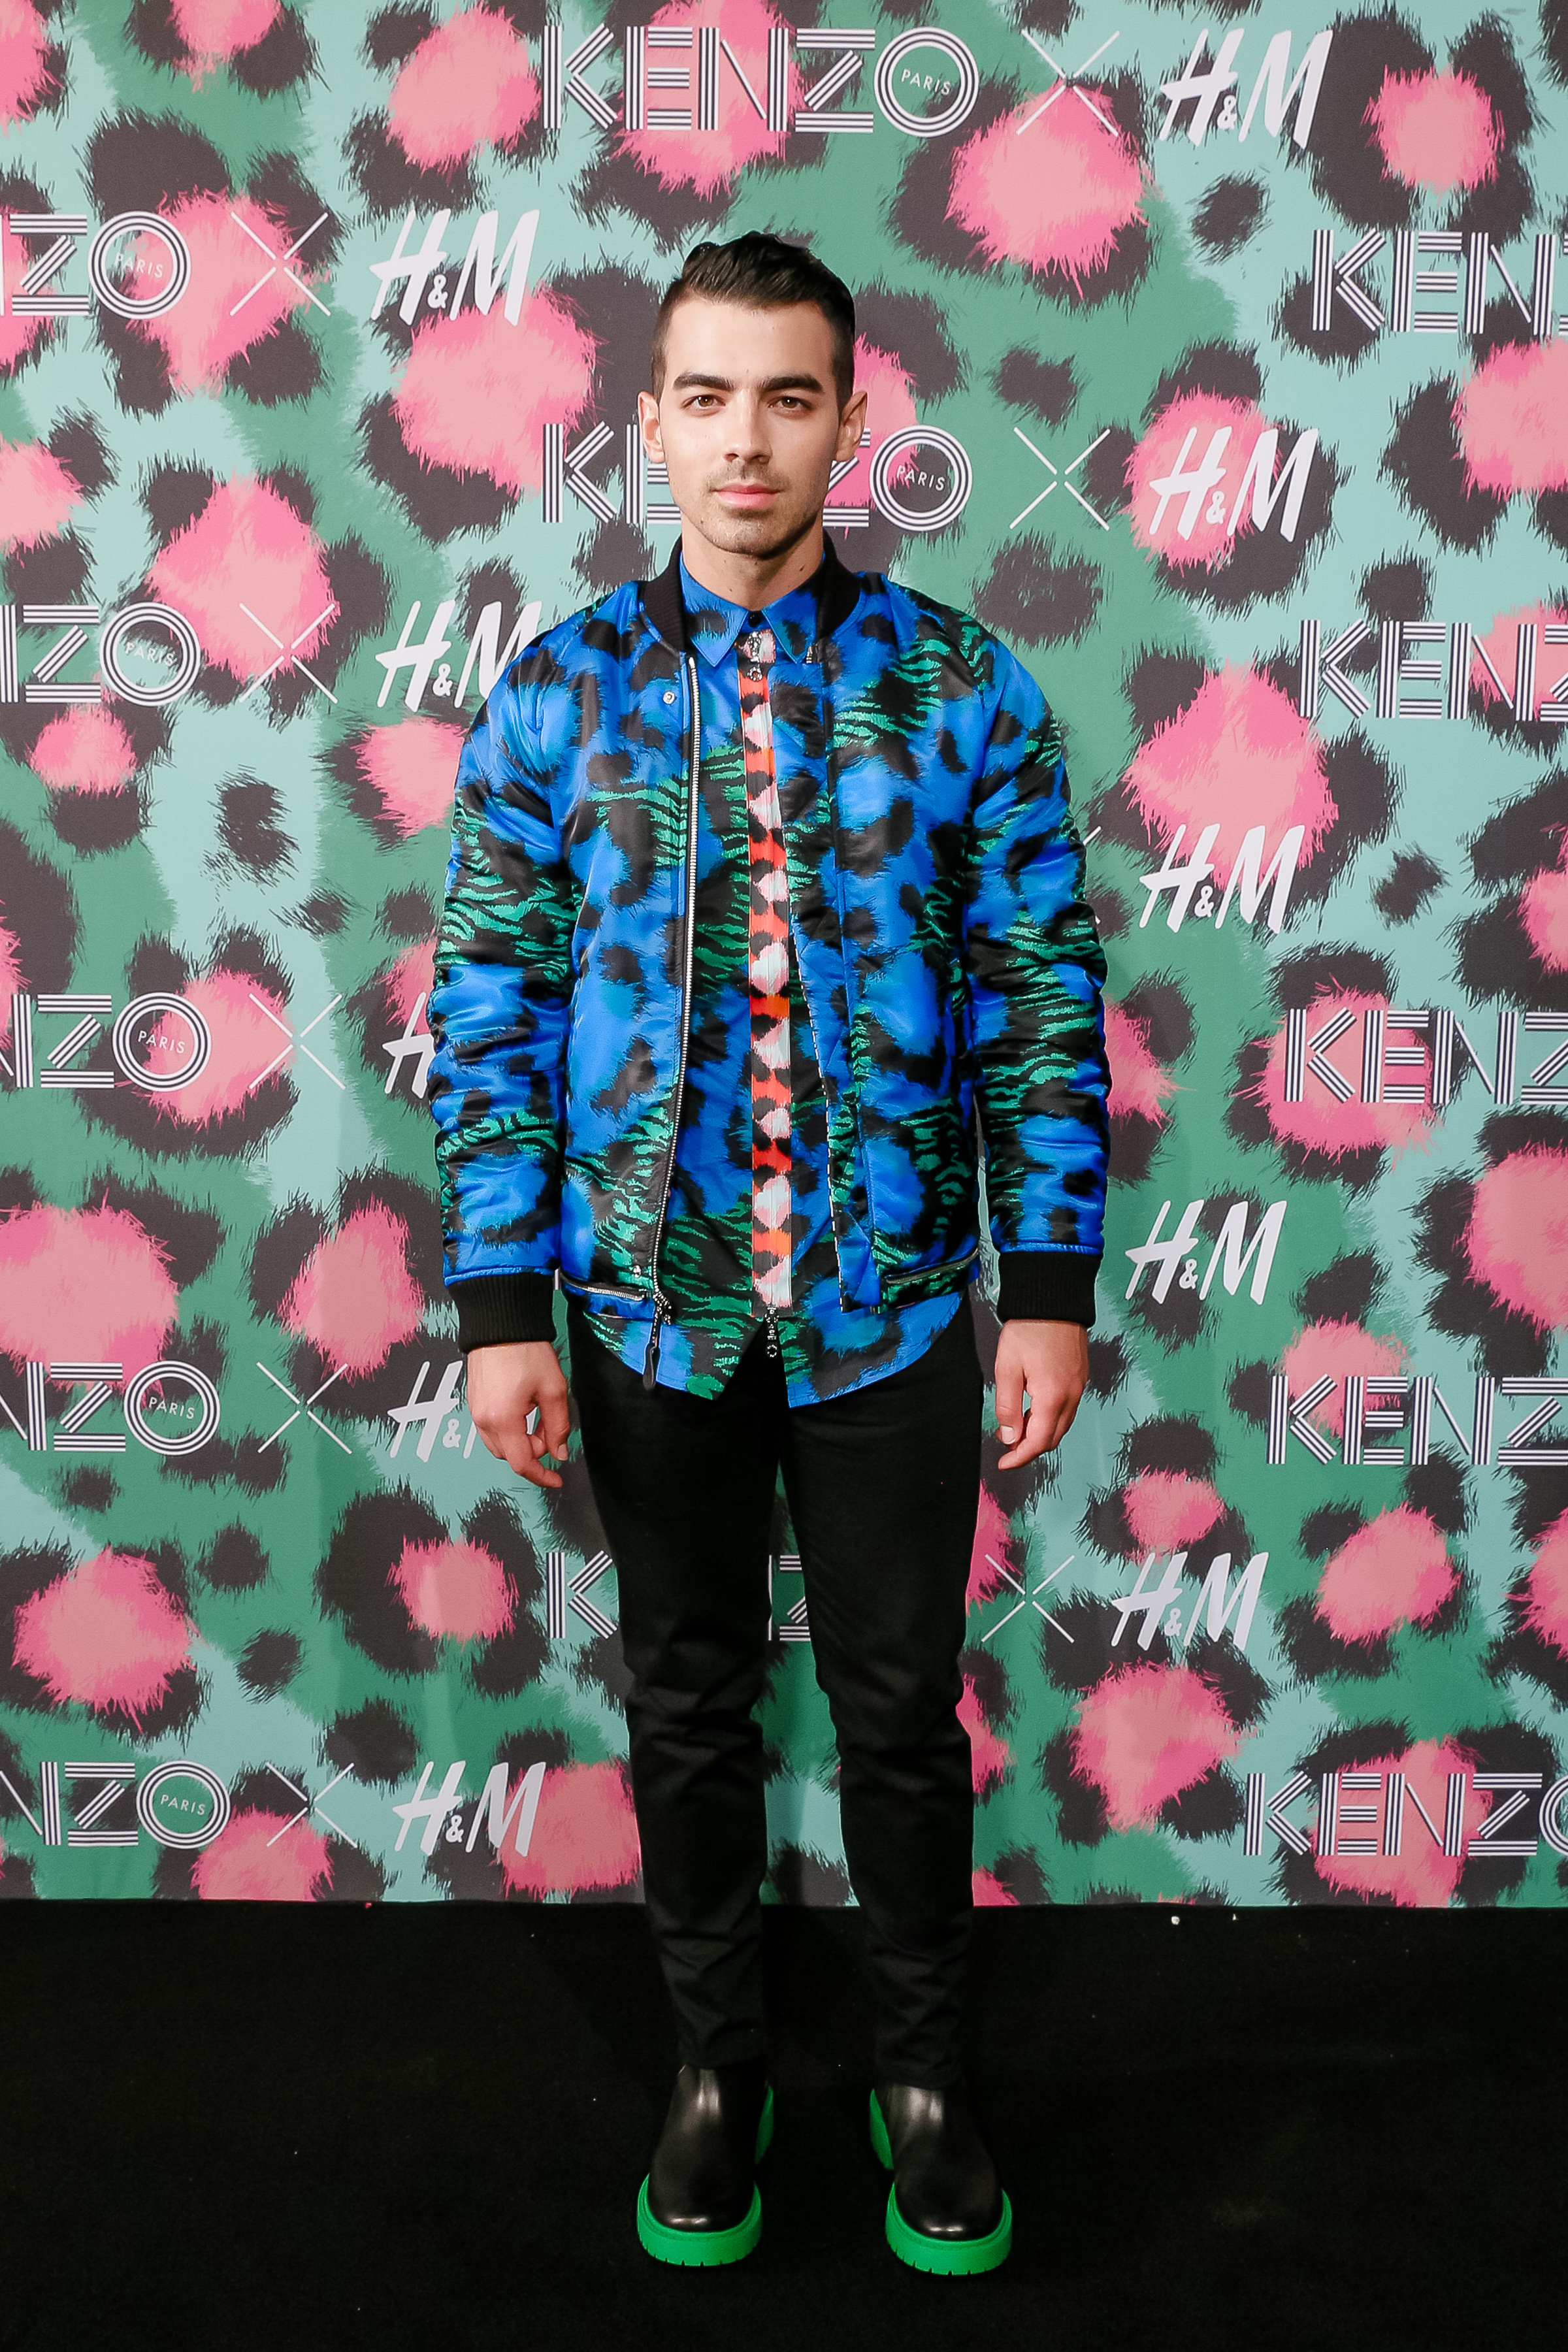 Kenzo and H&M party | 9Style